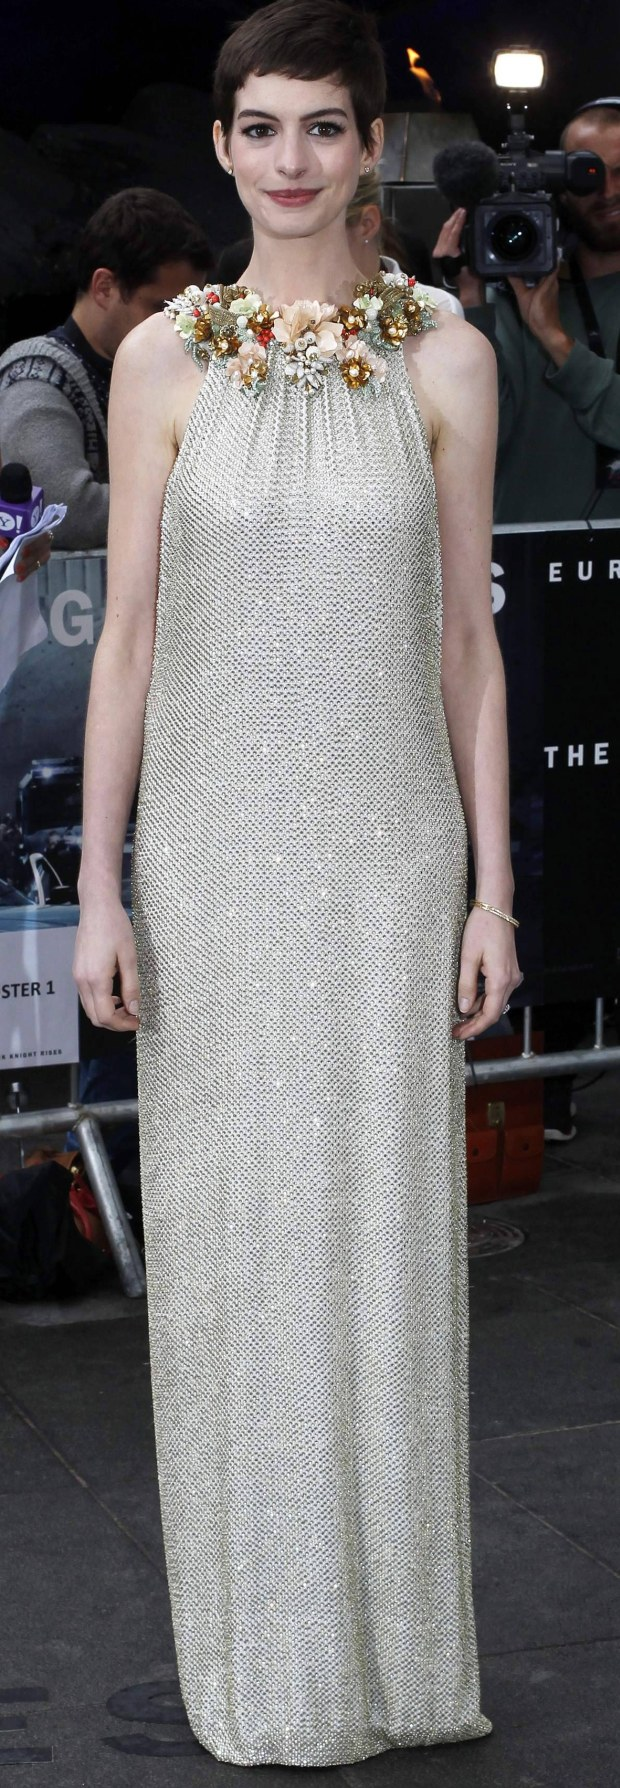 """U.S. actress Anne Hathaway poses for photographers as she arrives at the European Premiere of """"The Dark Knight Rises"""" in Leicester Square, central London, July 18, 2012. REUTERS/Andrew Winning (BRITAIN - Tags: ENTERTAINMENT)"""